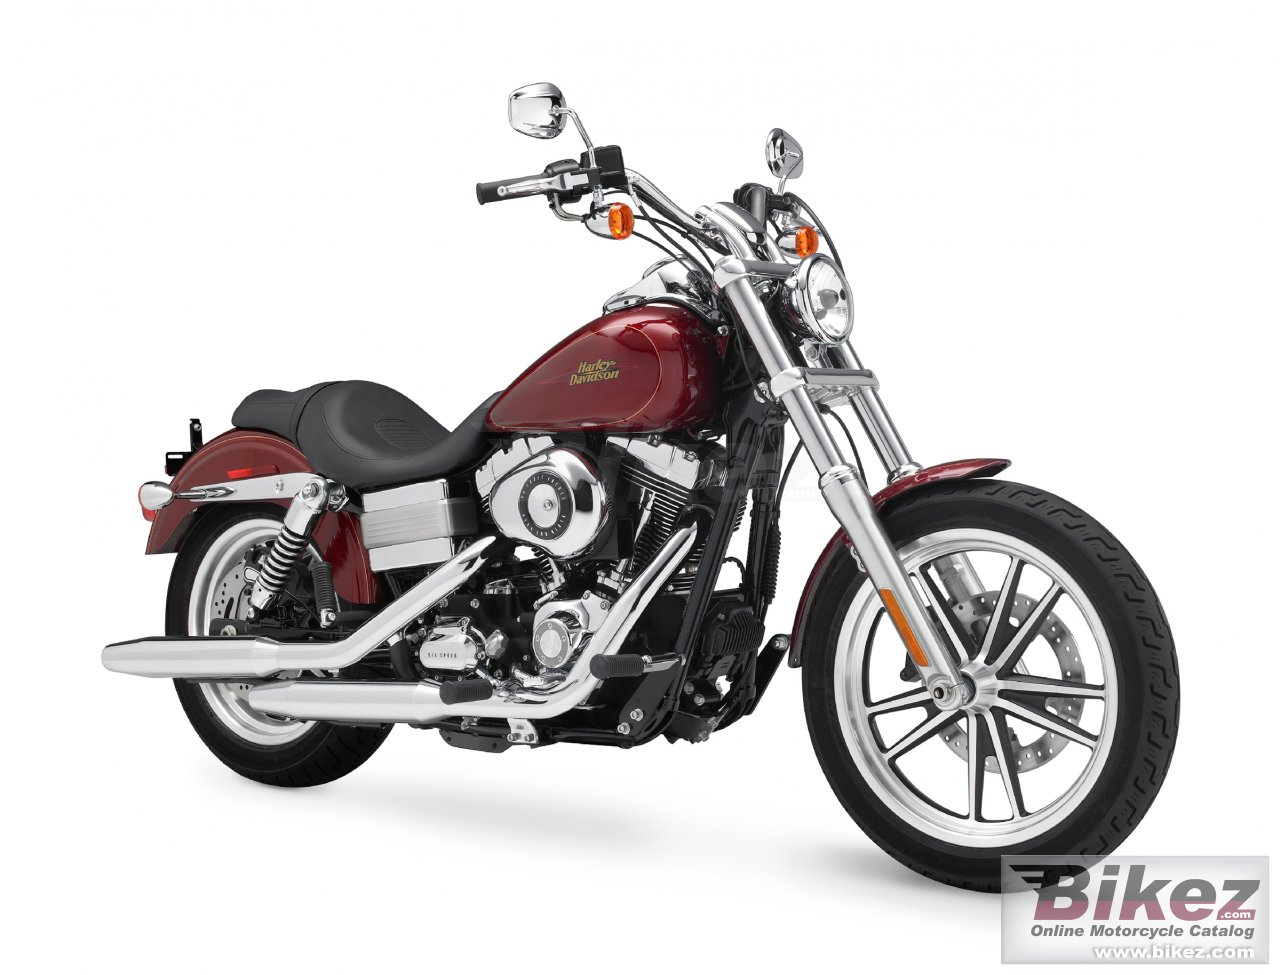 Big Harley-Davidson fxdl dyna low rider picture and wallpaper from Bikez.com